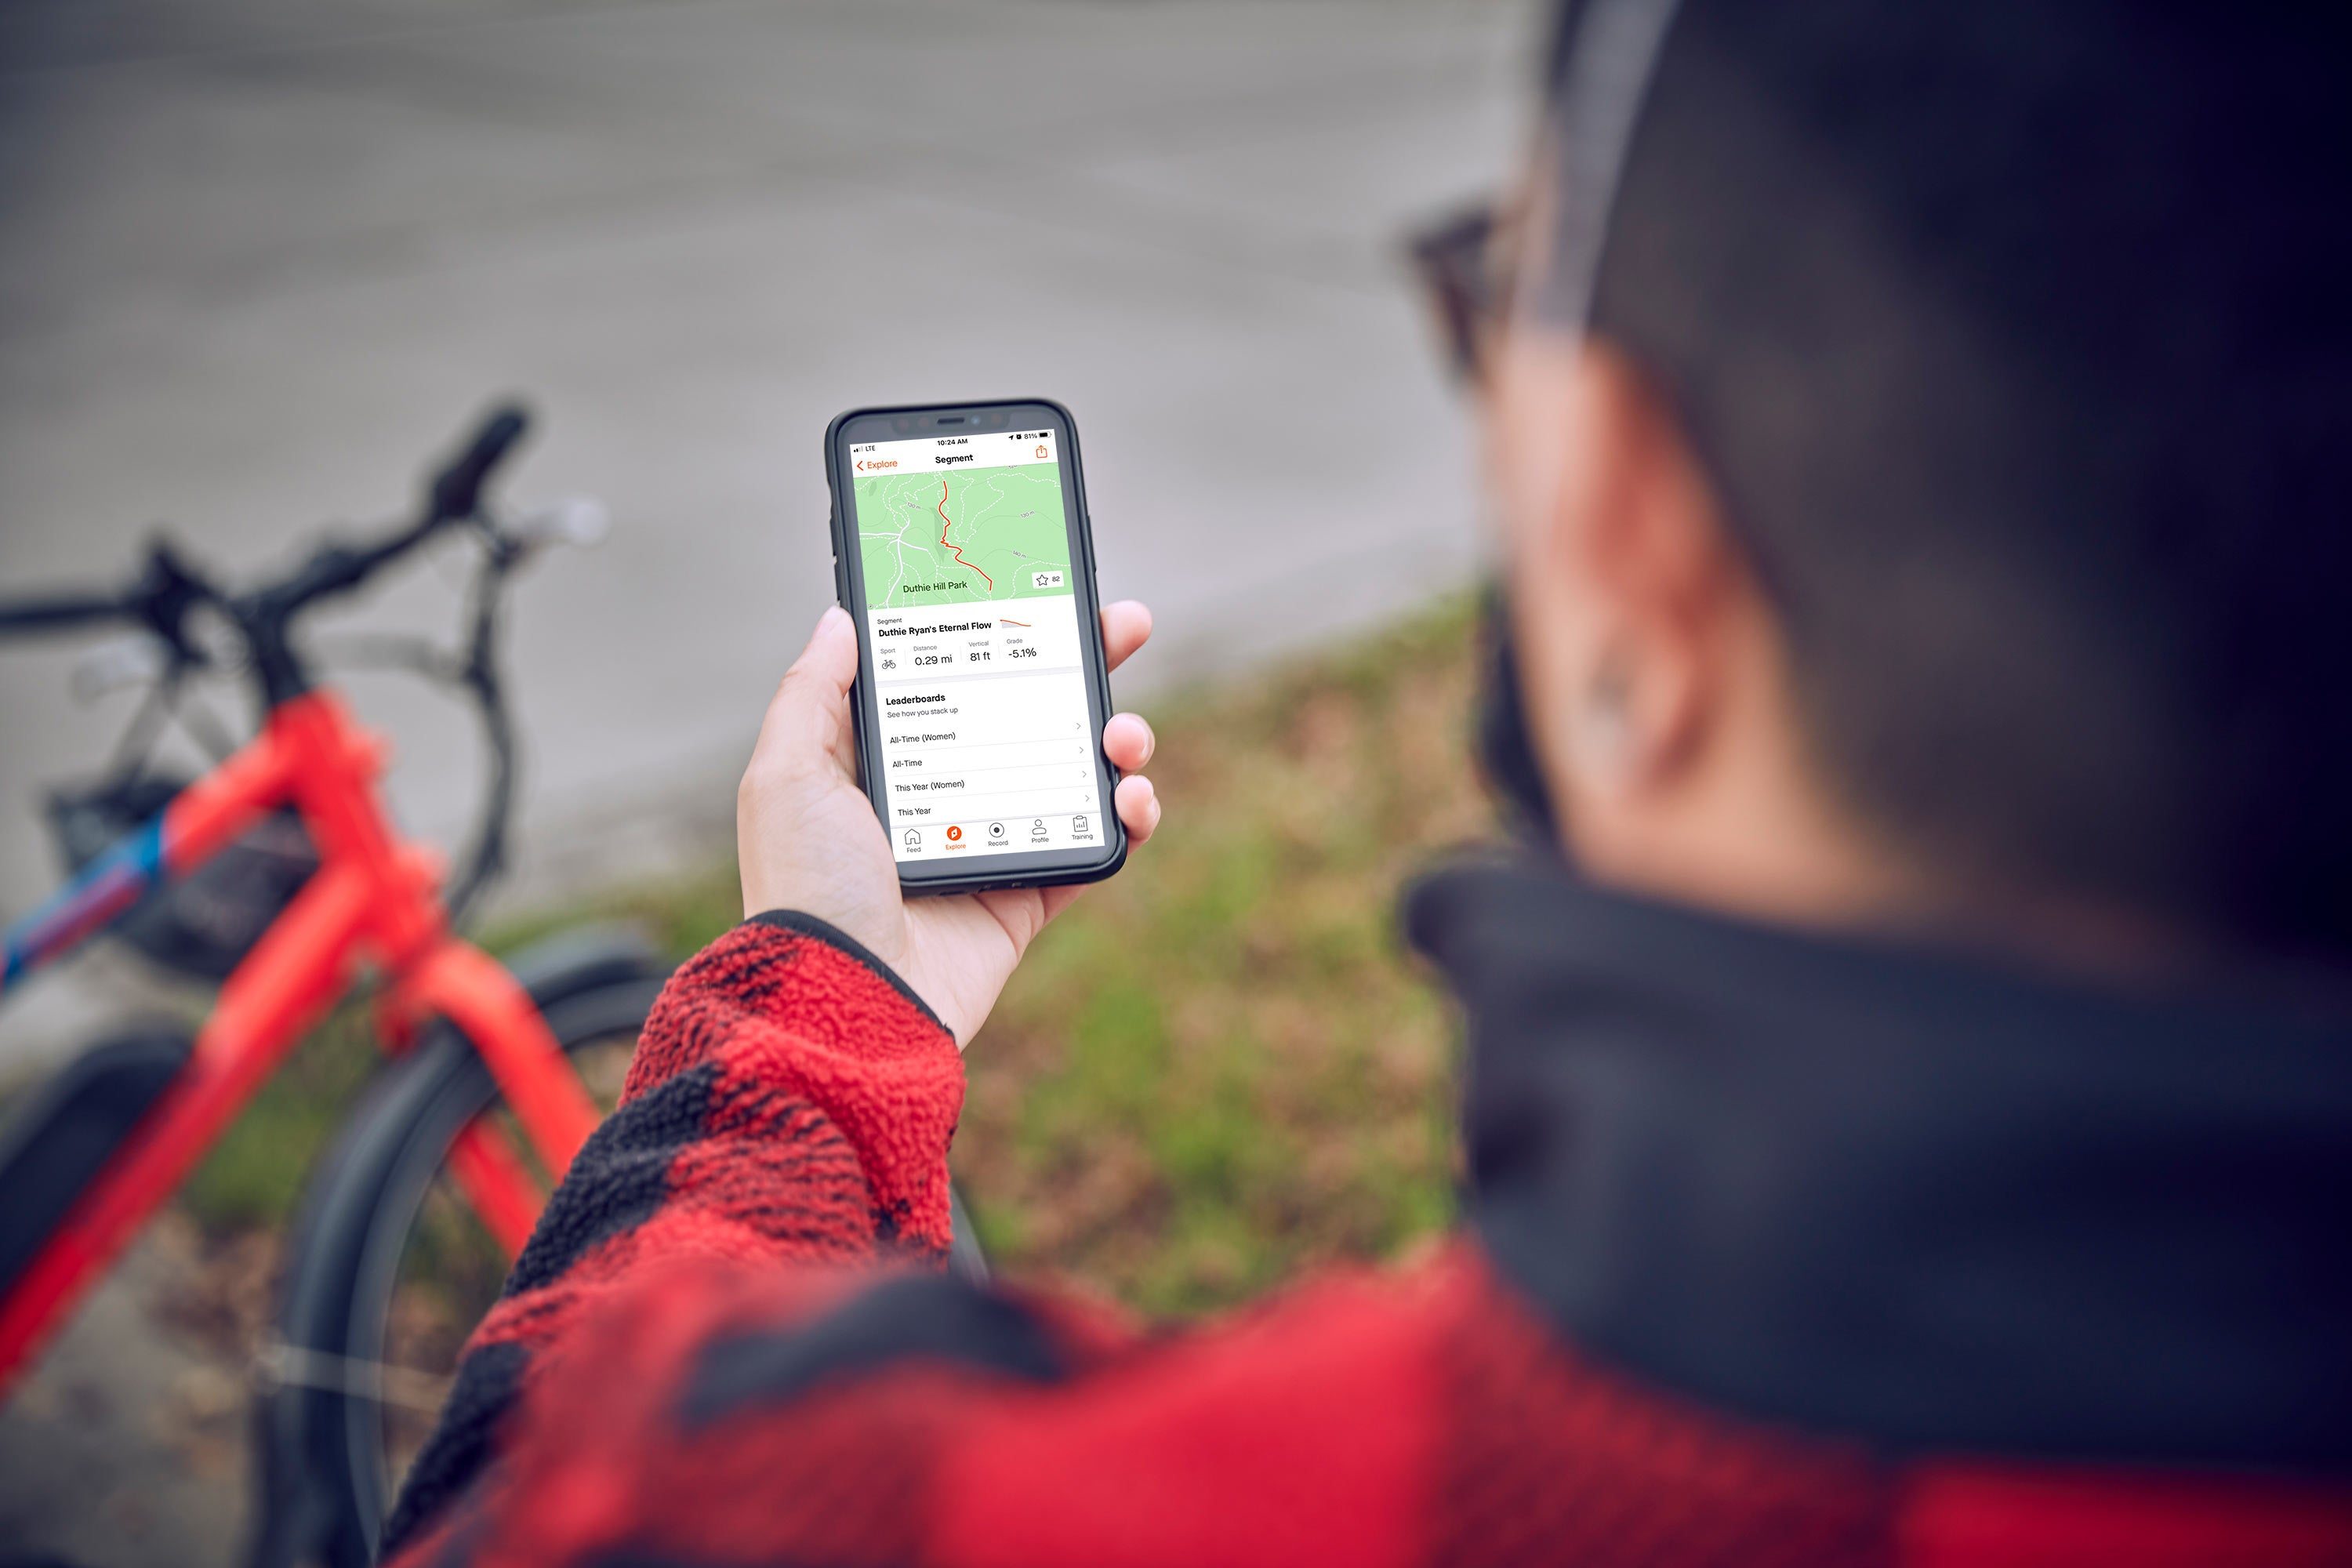 A Rad Power Bikes rider looks at his route on his phone.